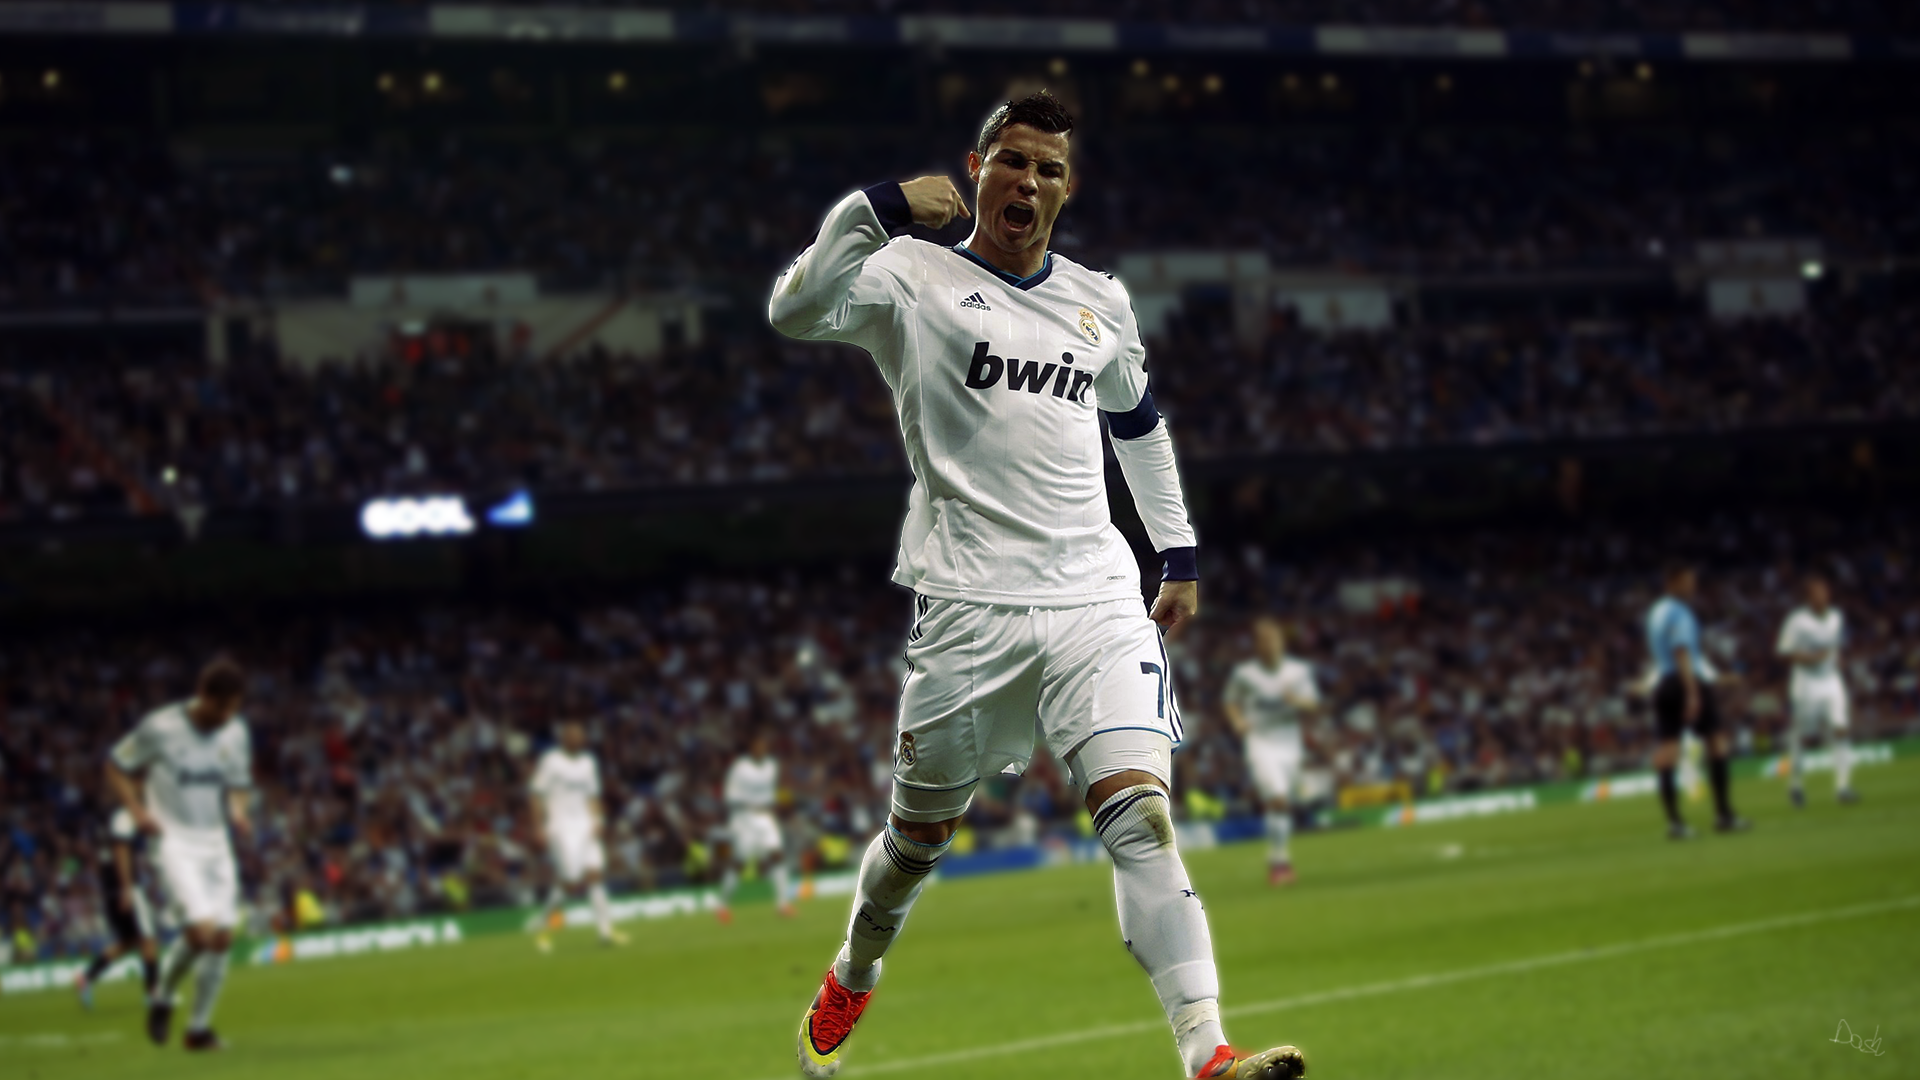 Cristiano Ronaldo Portugal Hd Wallpapers Desktop And: Cristiano Ronaldo Backgrounds, Pictures, Images